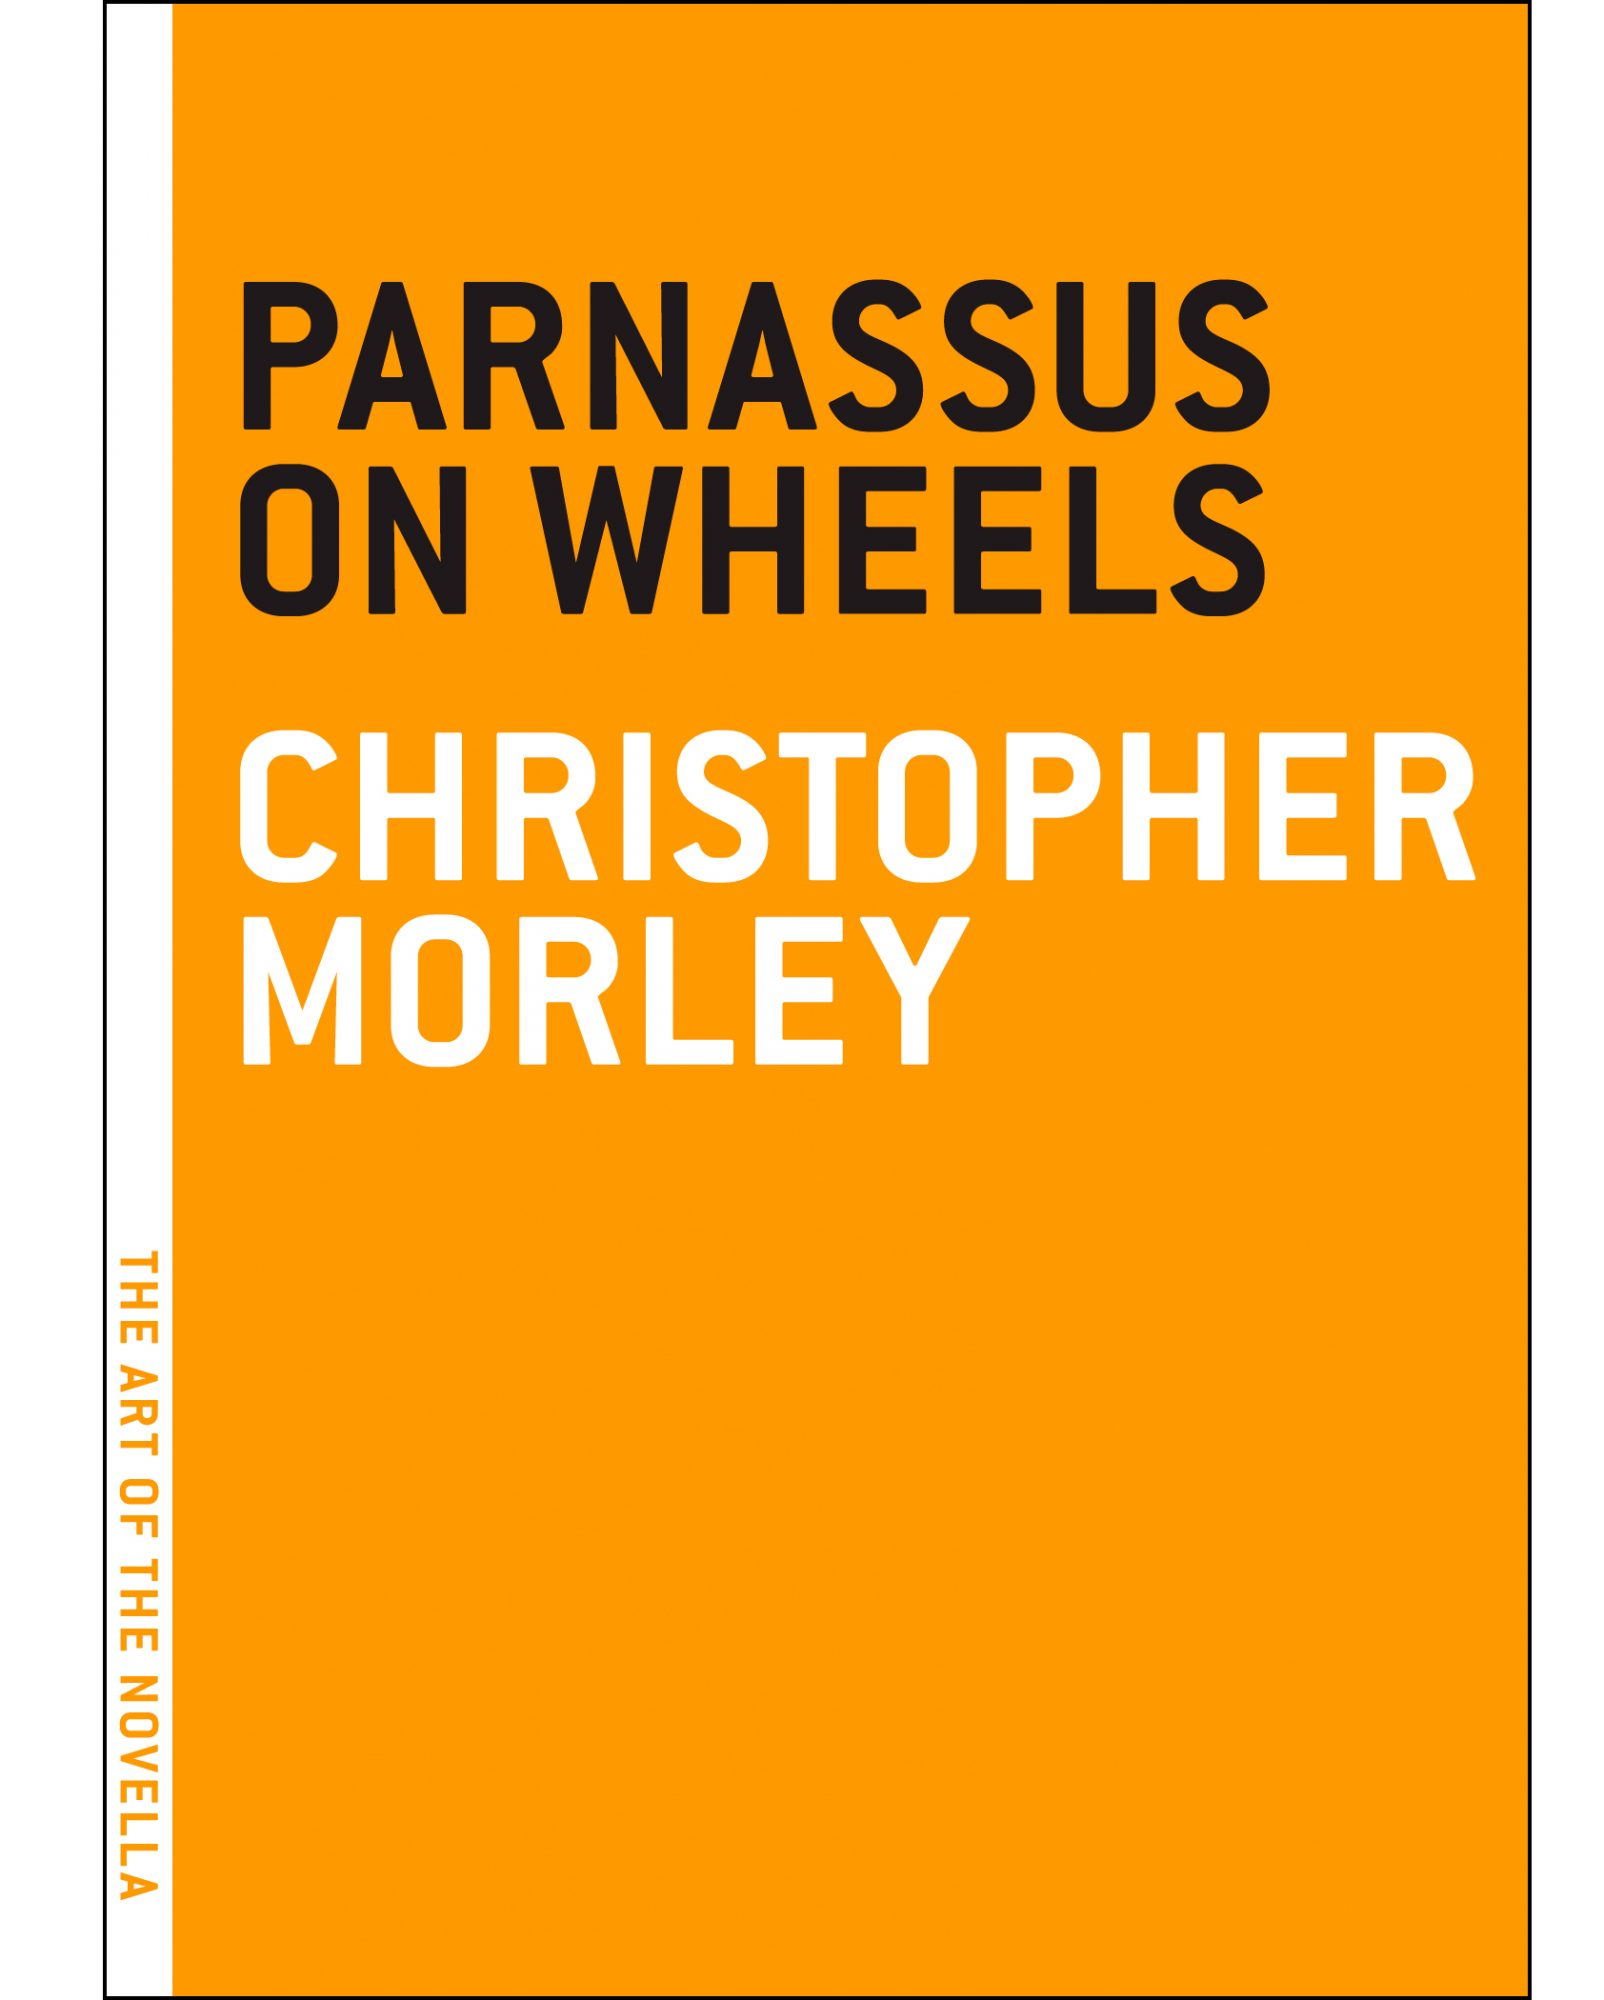 """Parnassus on Wheels"" by Christopher Morley"